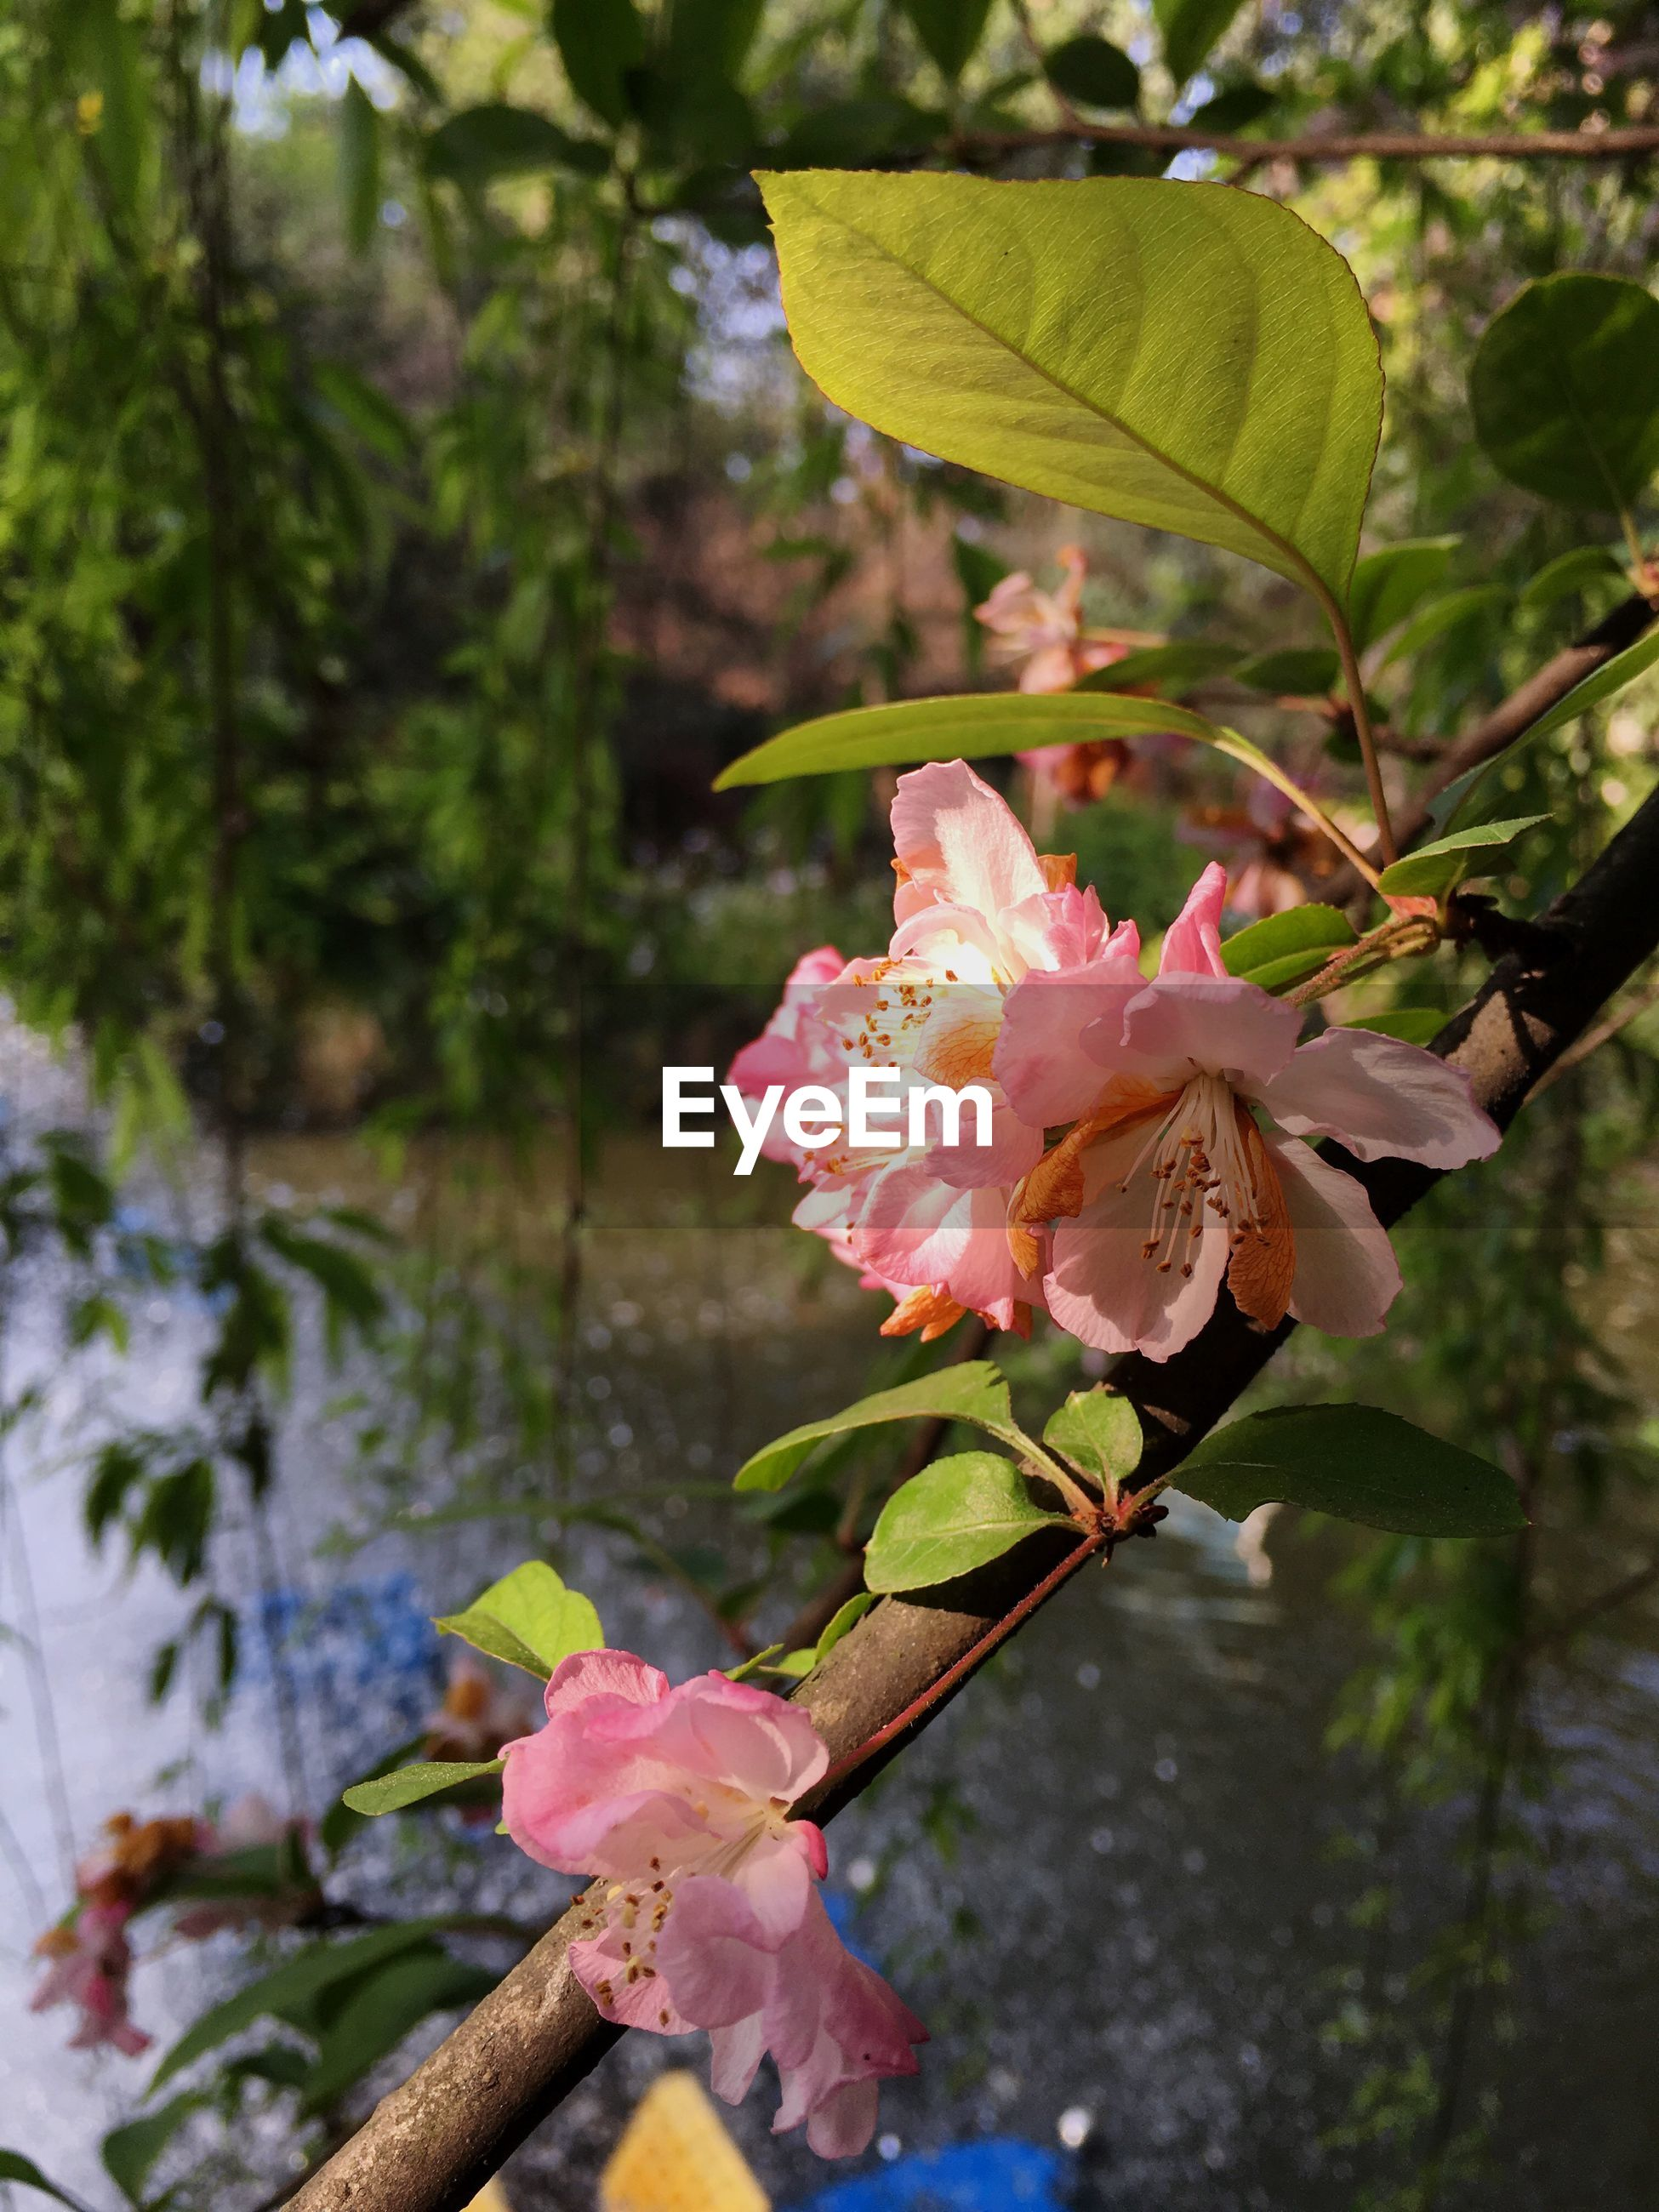 flower, focus on foreground, freshness, close-up, fragility, growth, nature, petal, leaf, tree, beauty in nature, plant, stem, season, day, outdoors, pink color, flower head, branch, change